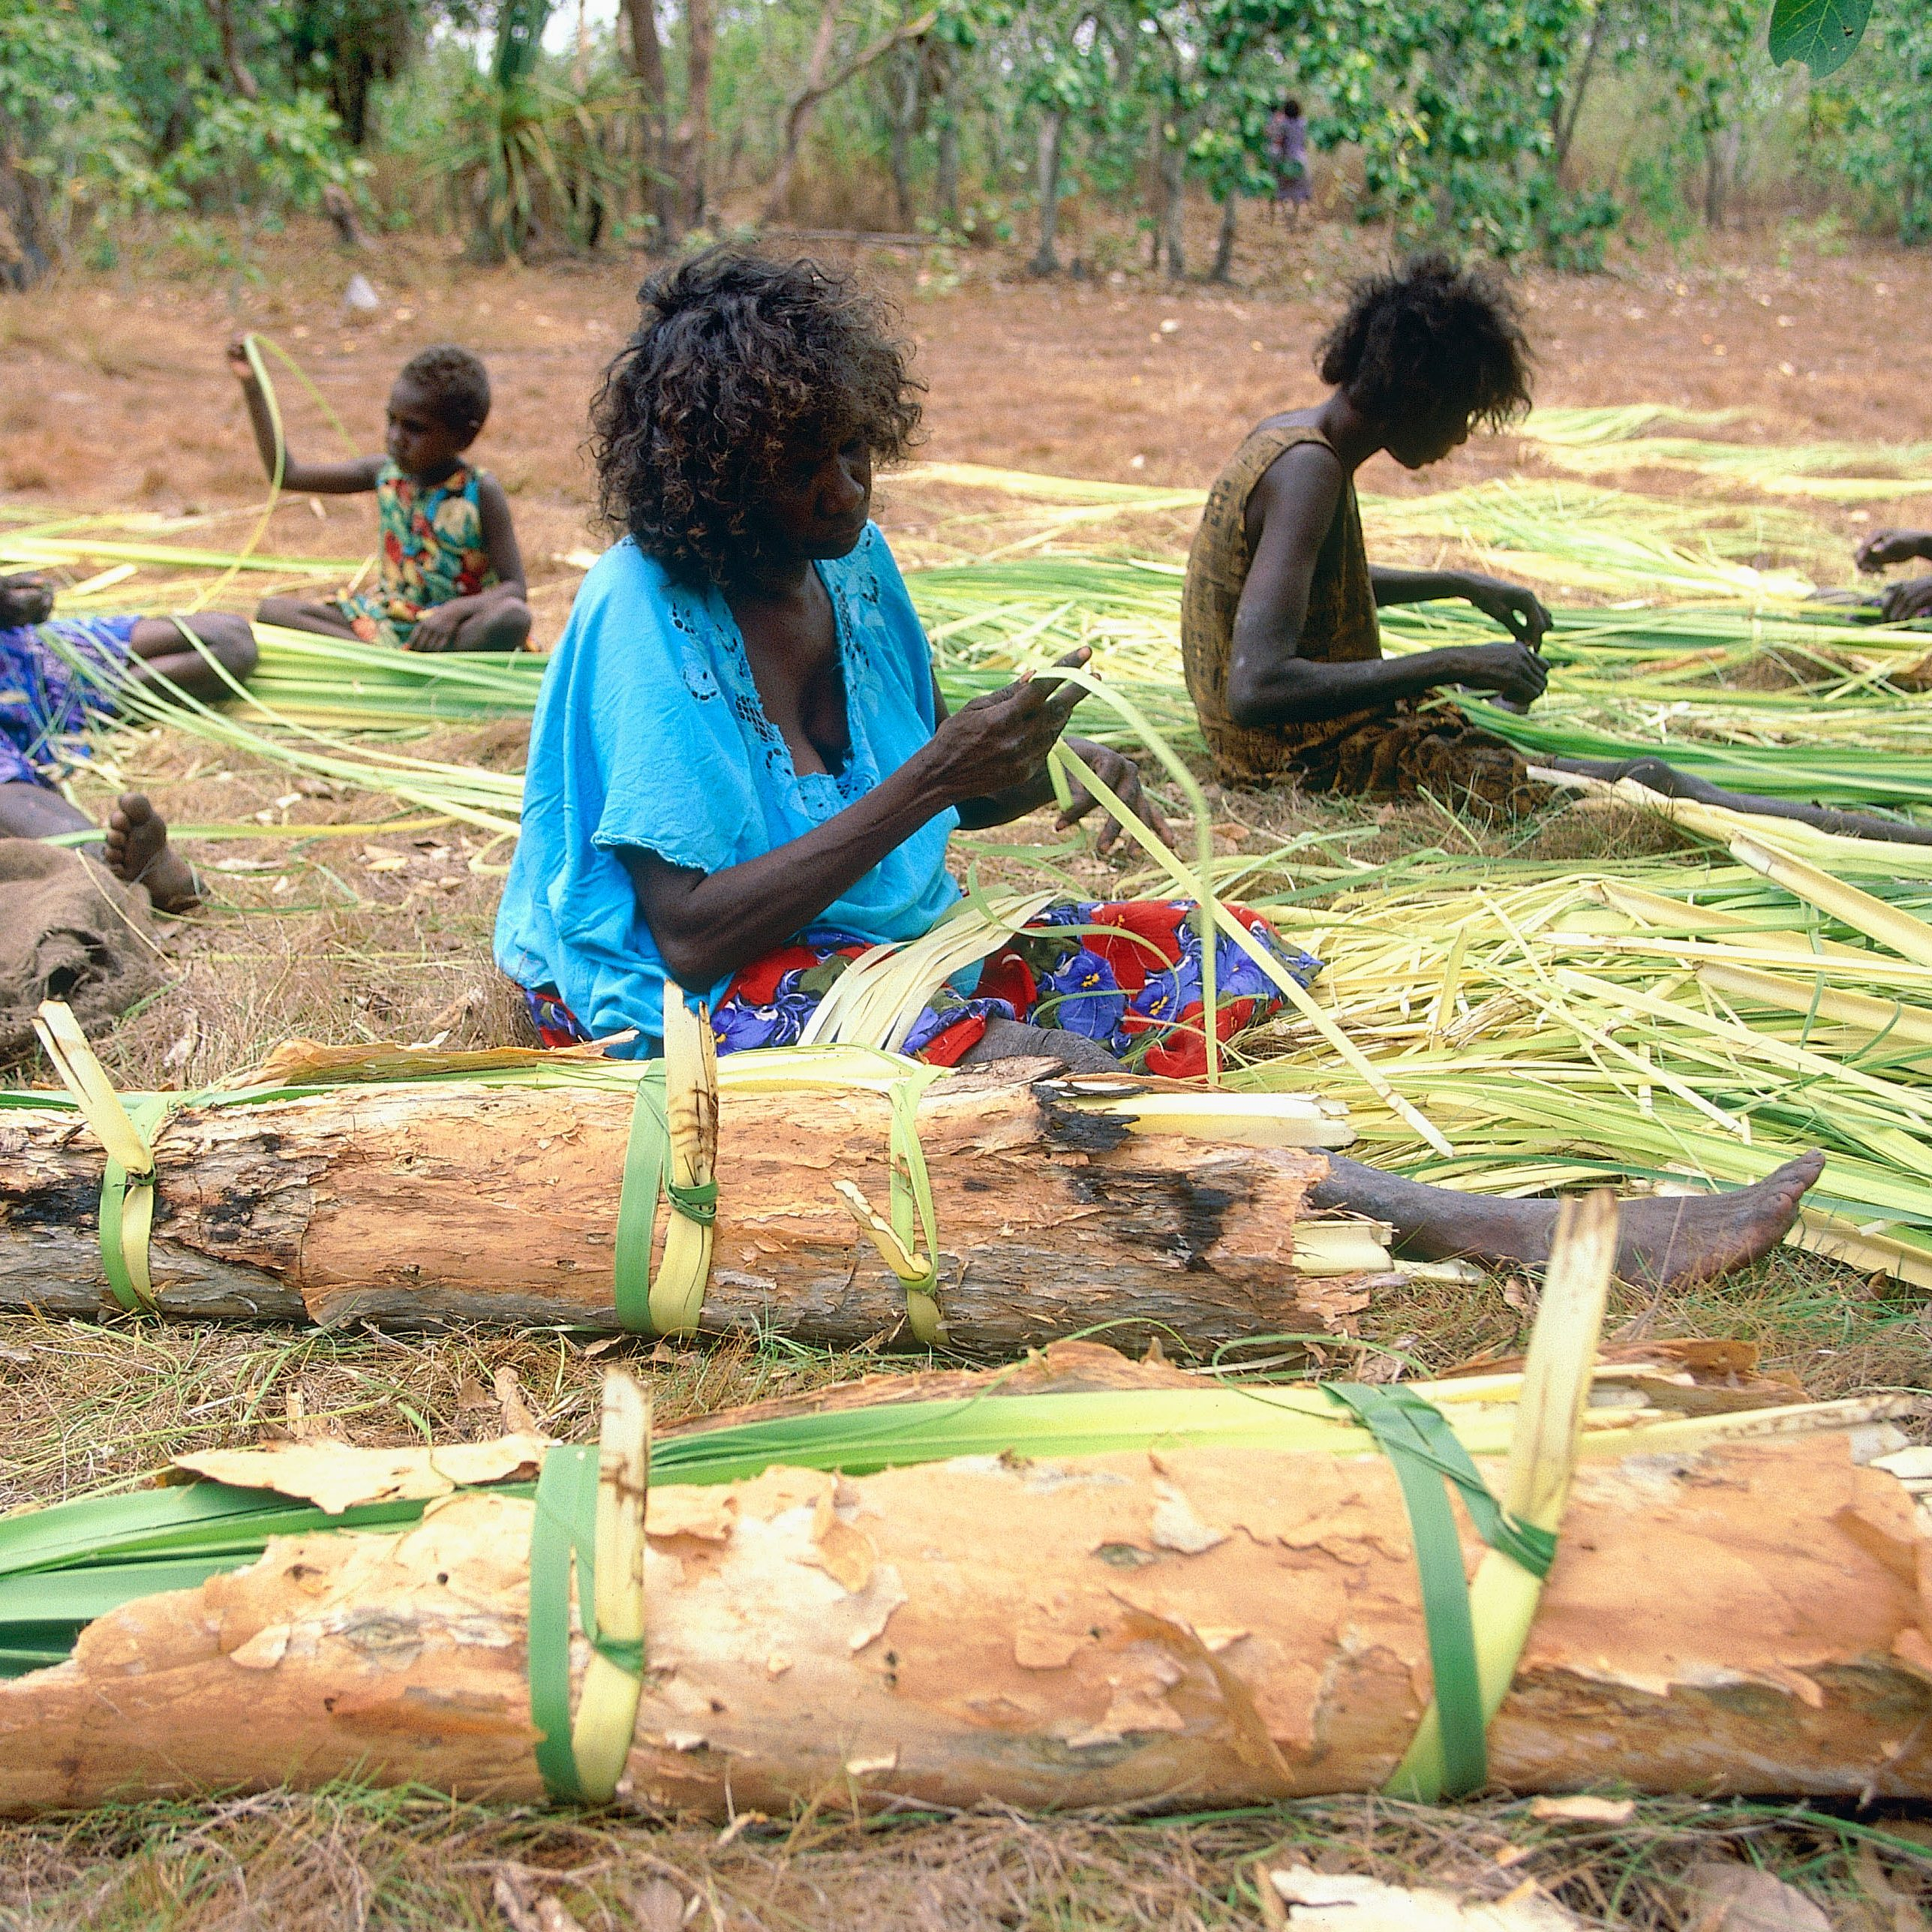 AXCFEA Aboriginal women and girls having gathered pandanus are splitting it for weaving Central Arnhem Land NT Australia